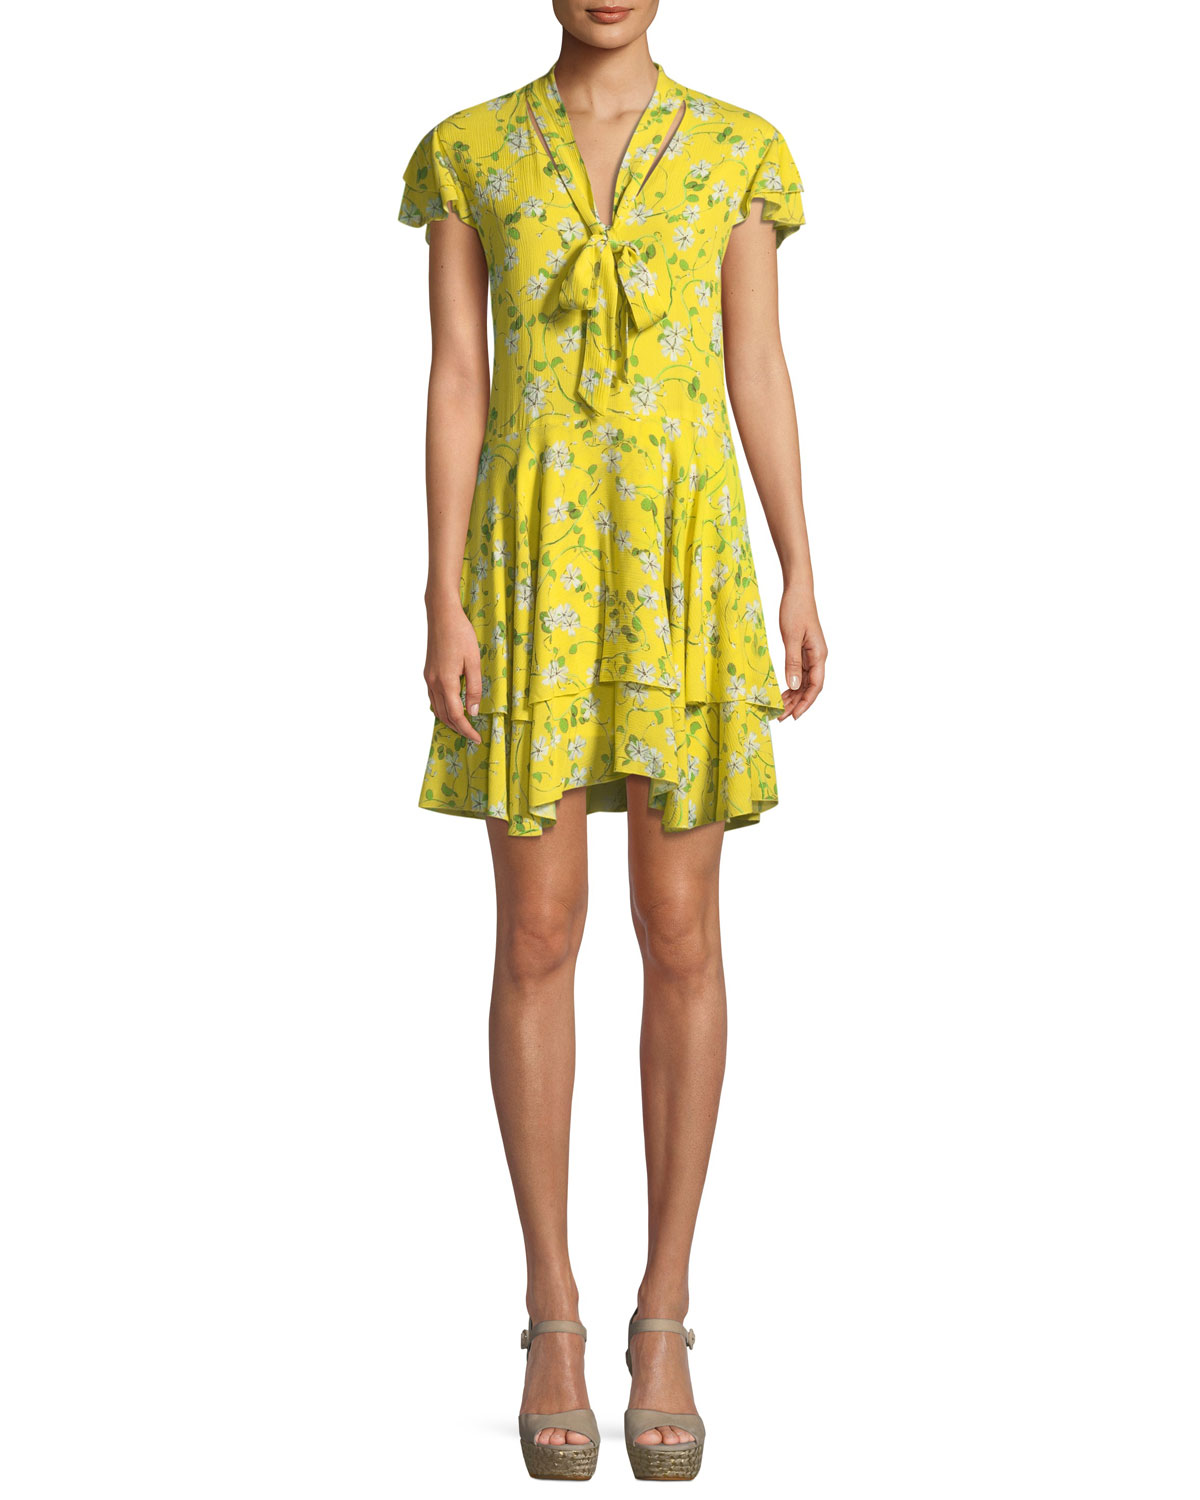 ALICE + OLIVIA MOORE FLORAL TIE-NECK TUNIC DRESS